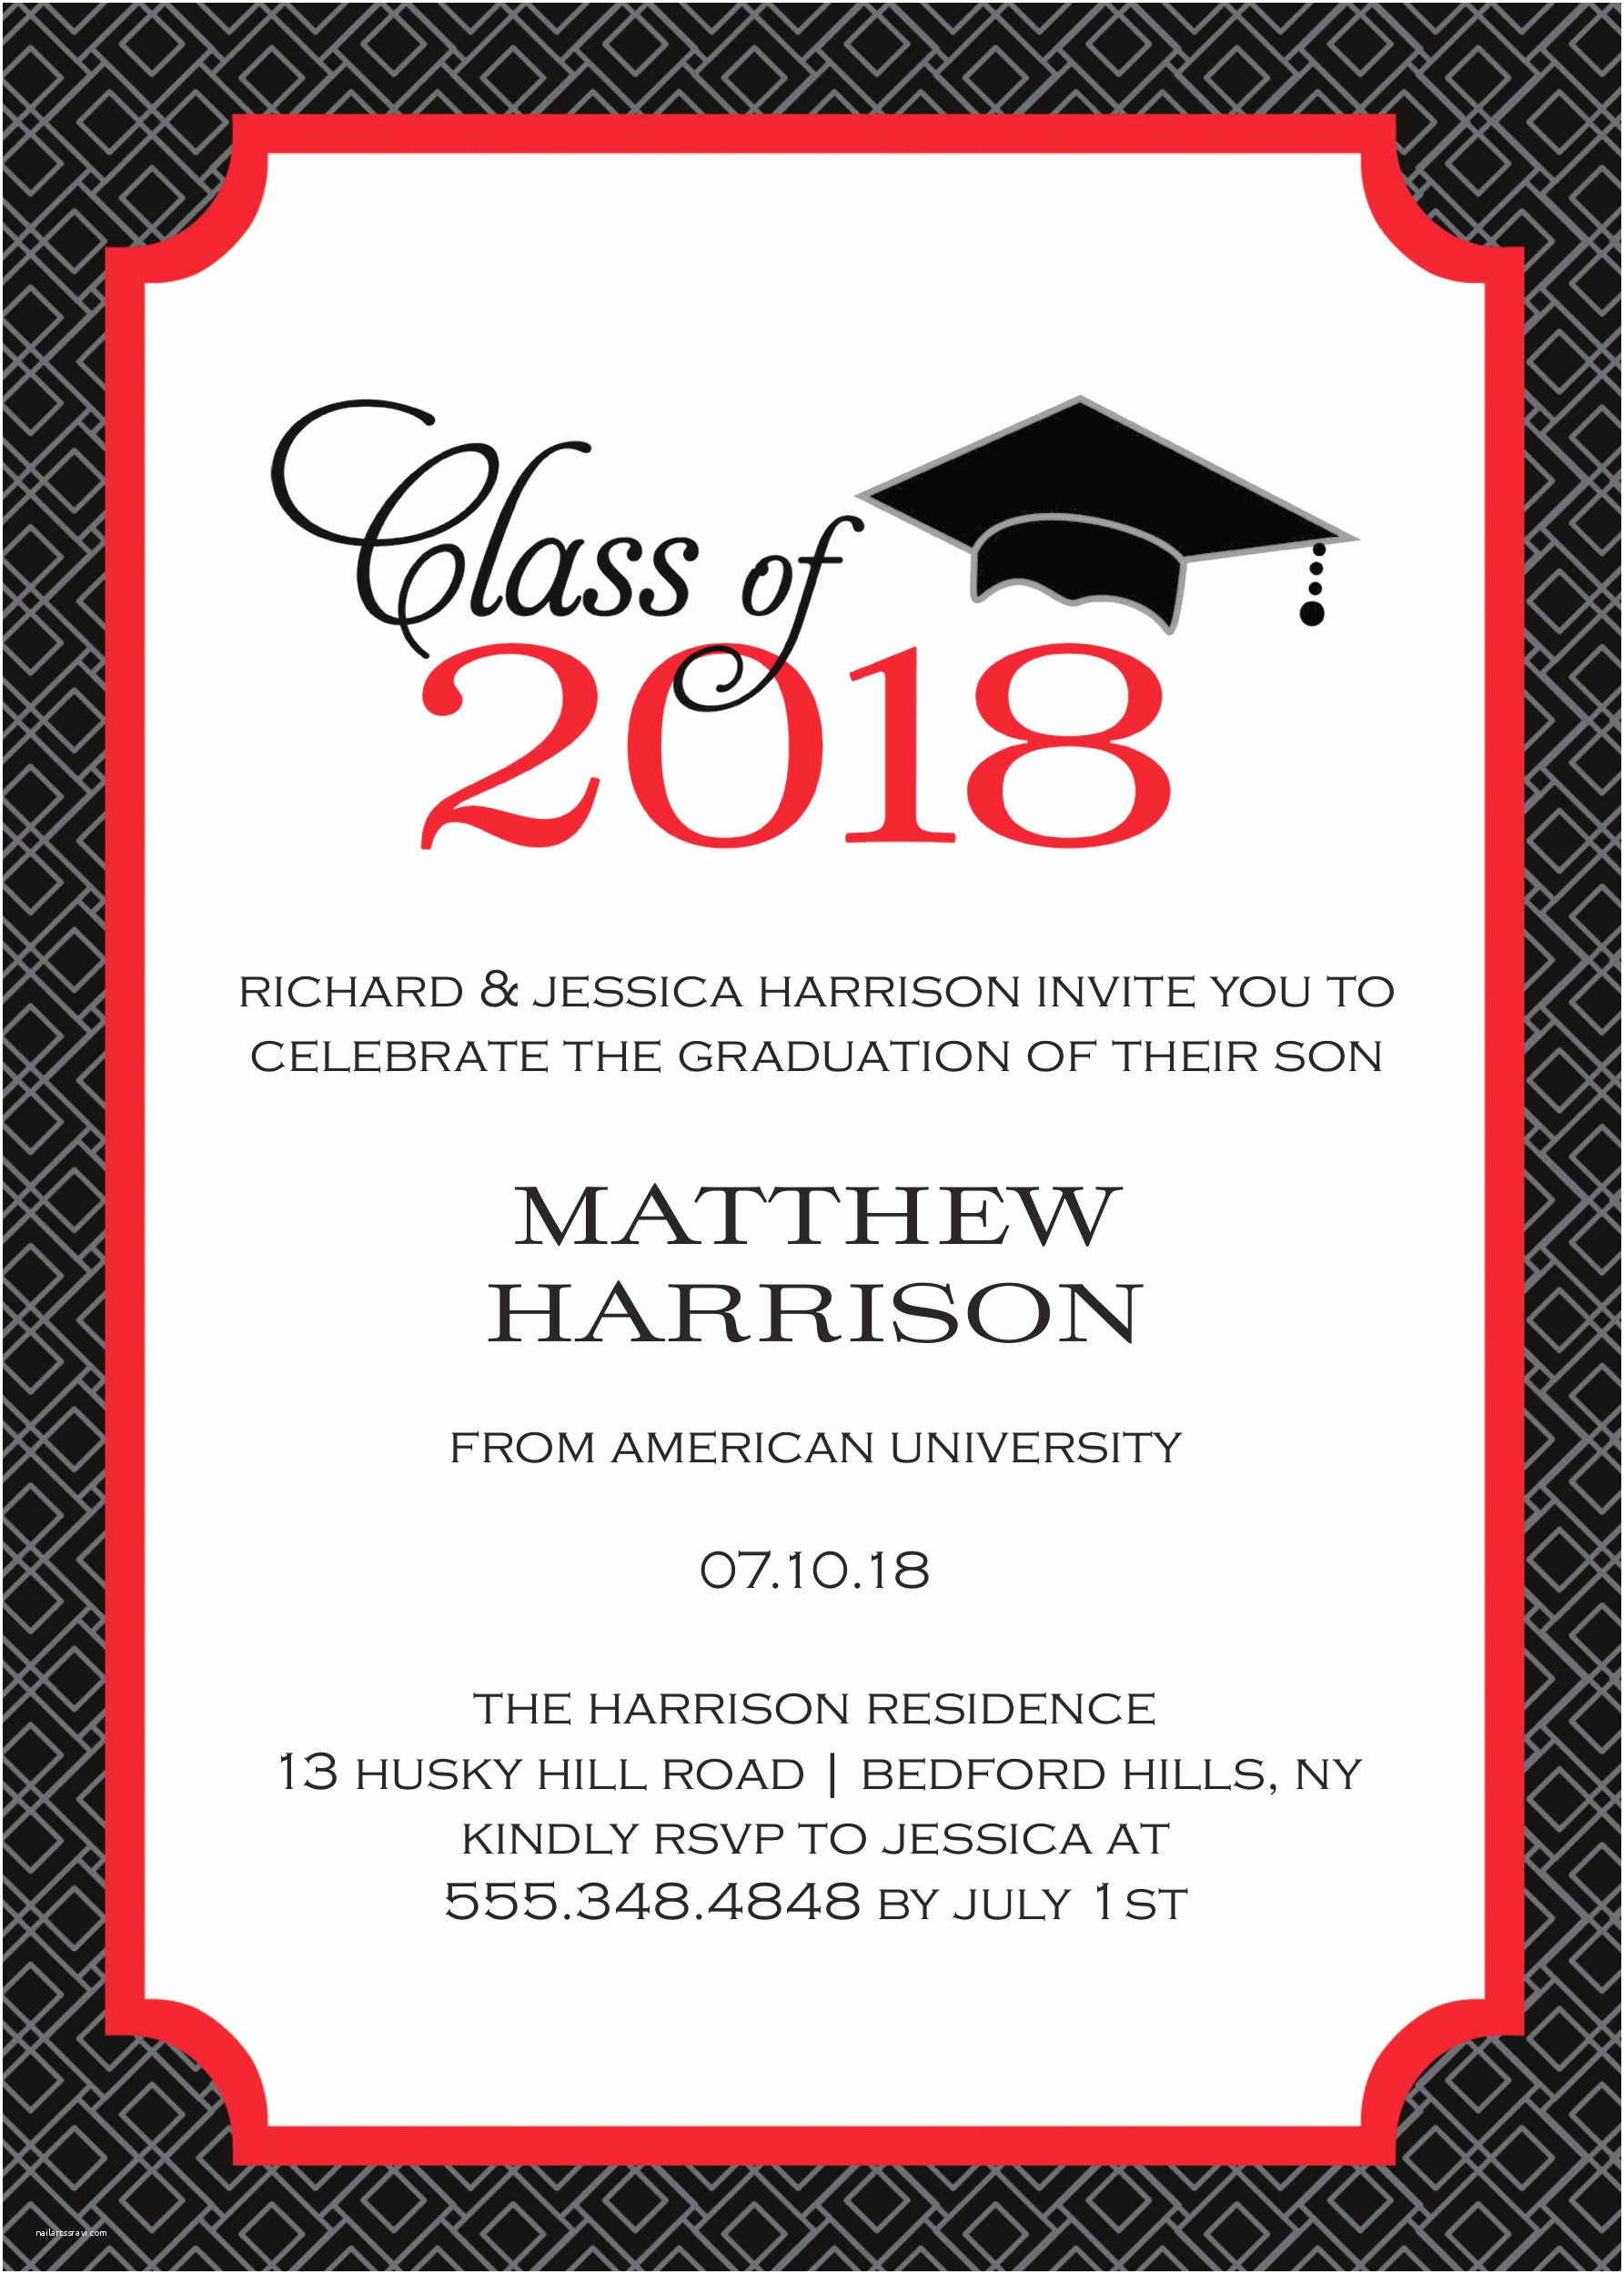 Graduation Party Invitation Graduation Party Invitations High School or College